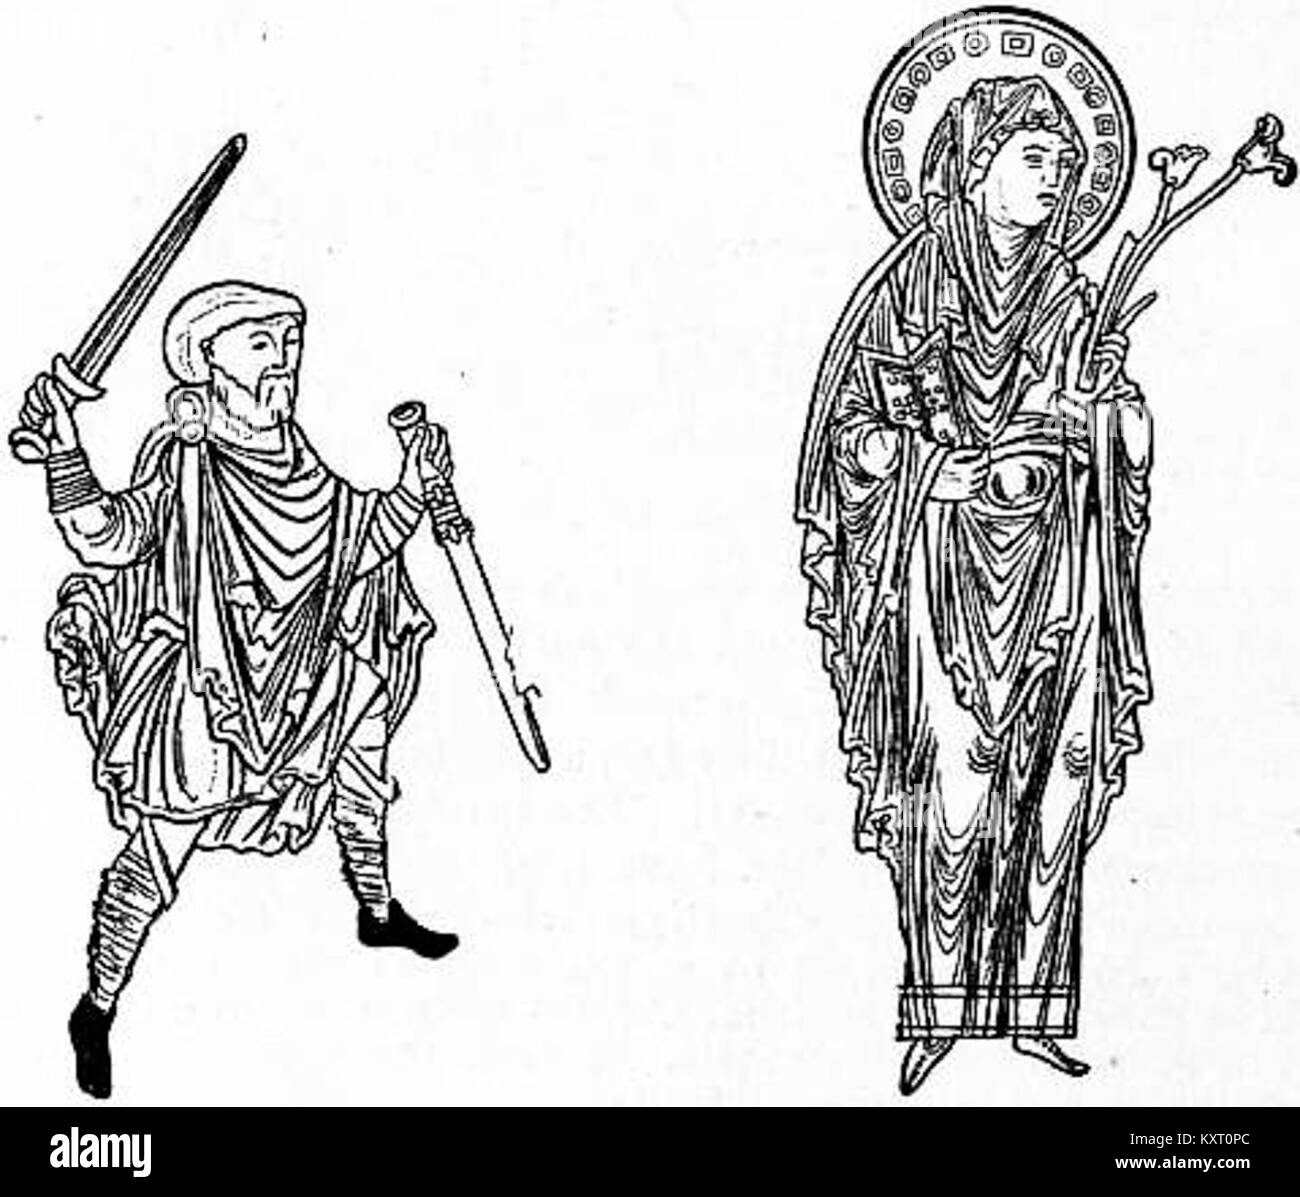 EB1911 Costume Figs. 25 & 26.—Old English Dress, Blessed Virgin - Stock Image